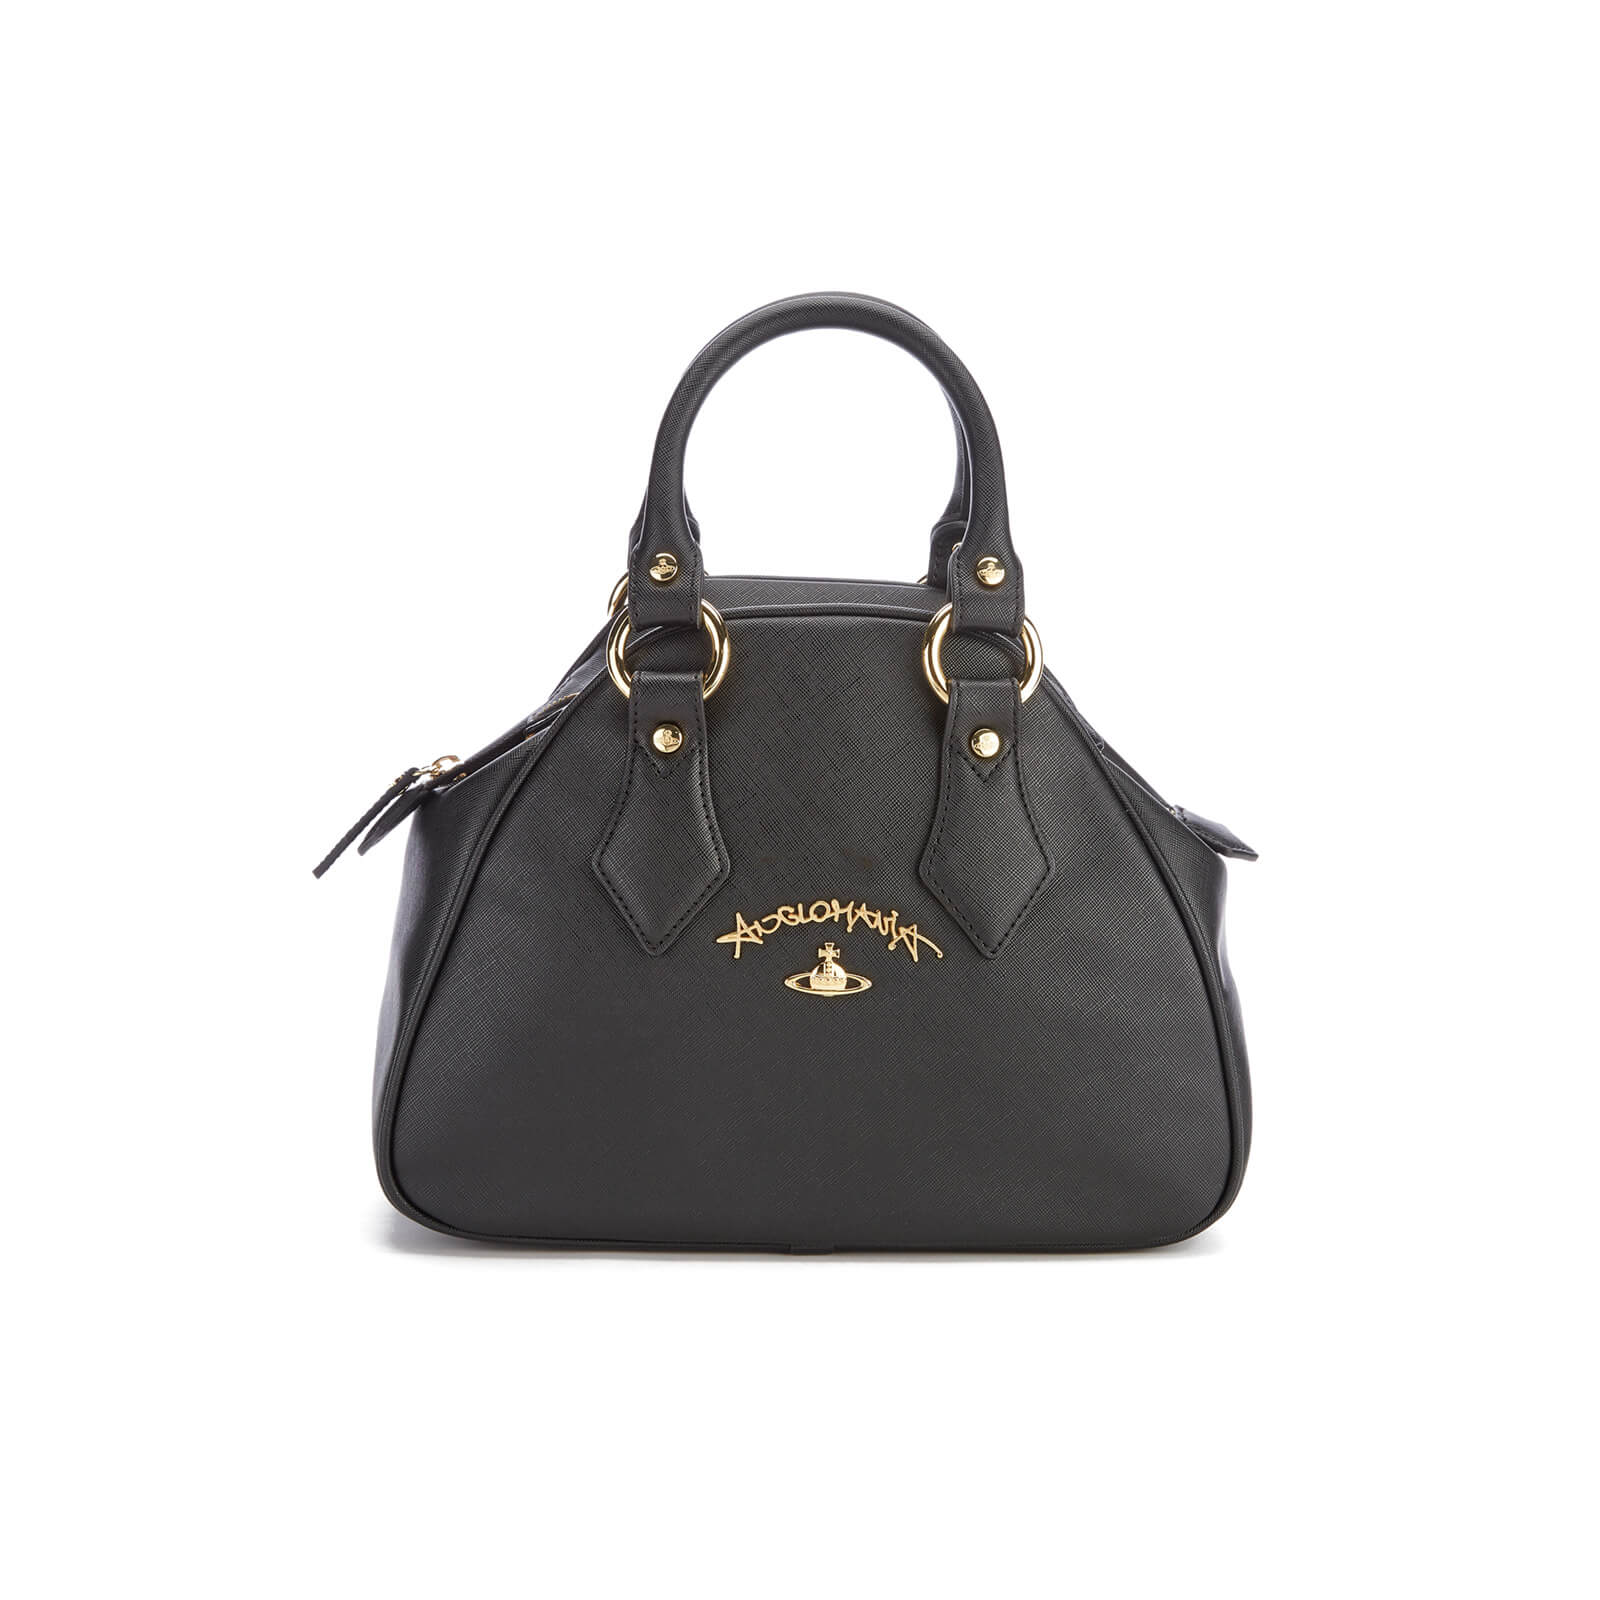 Vivienne Westwood Women s Divina Small Tote Bag - Black - Free UK Delivery  over £50 c99eb16c9fa8b